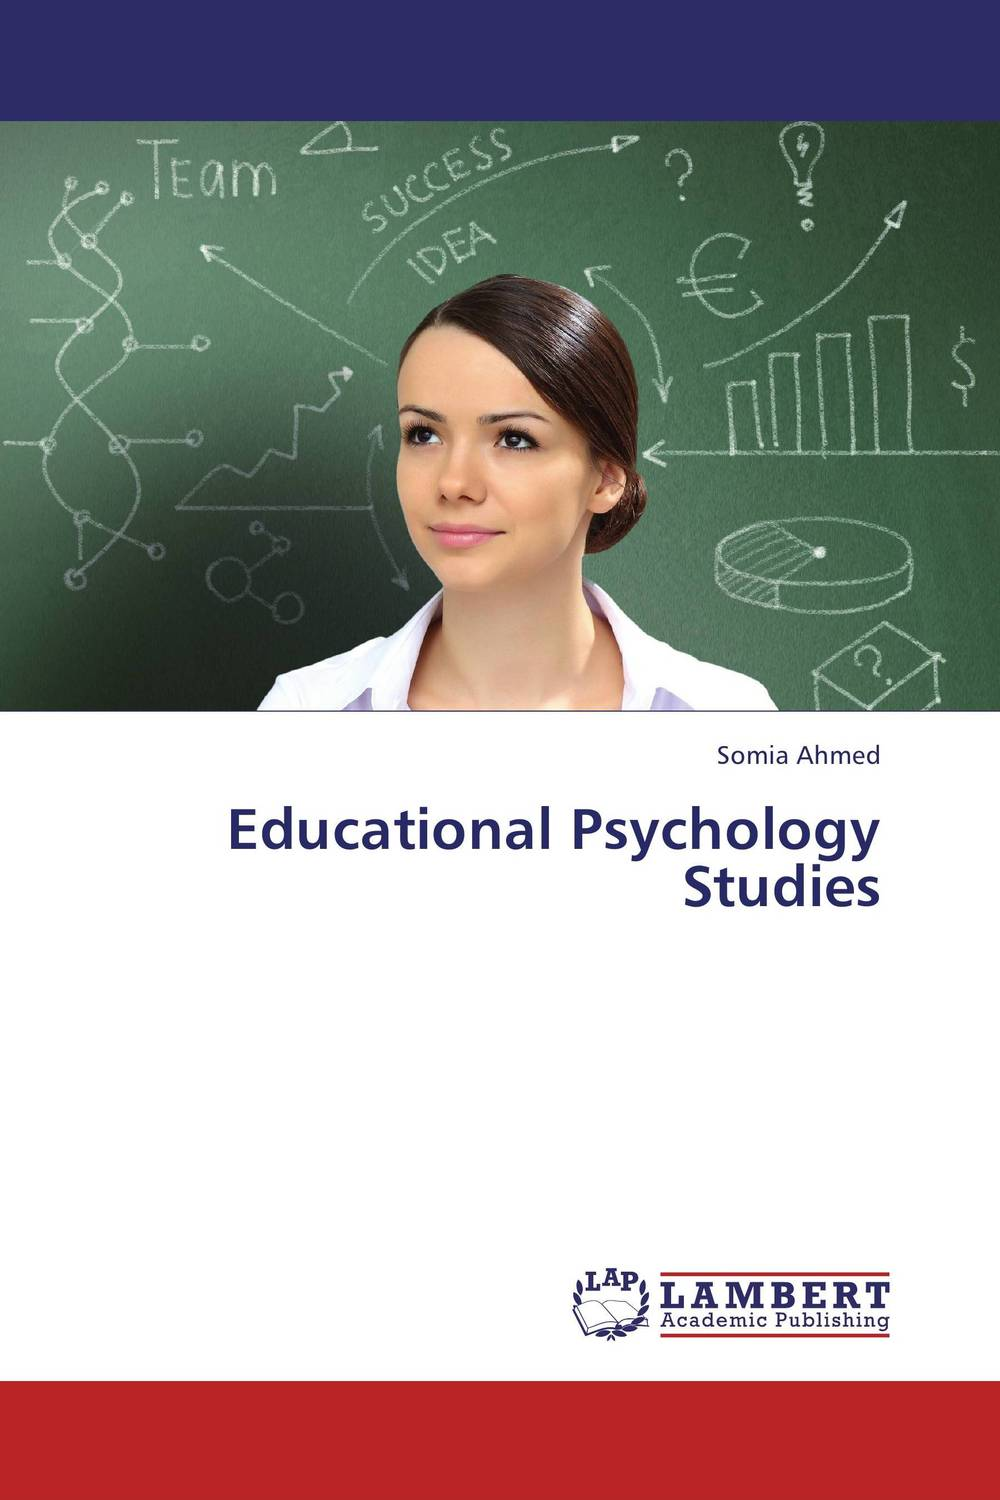 Educational Psychology Studies the quality of accreditation standards for distance learning